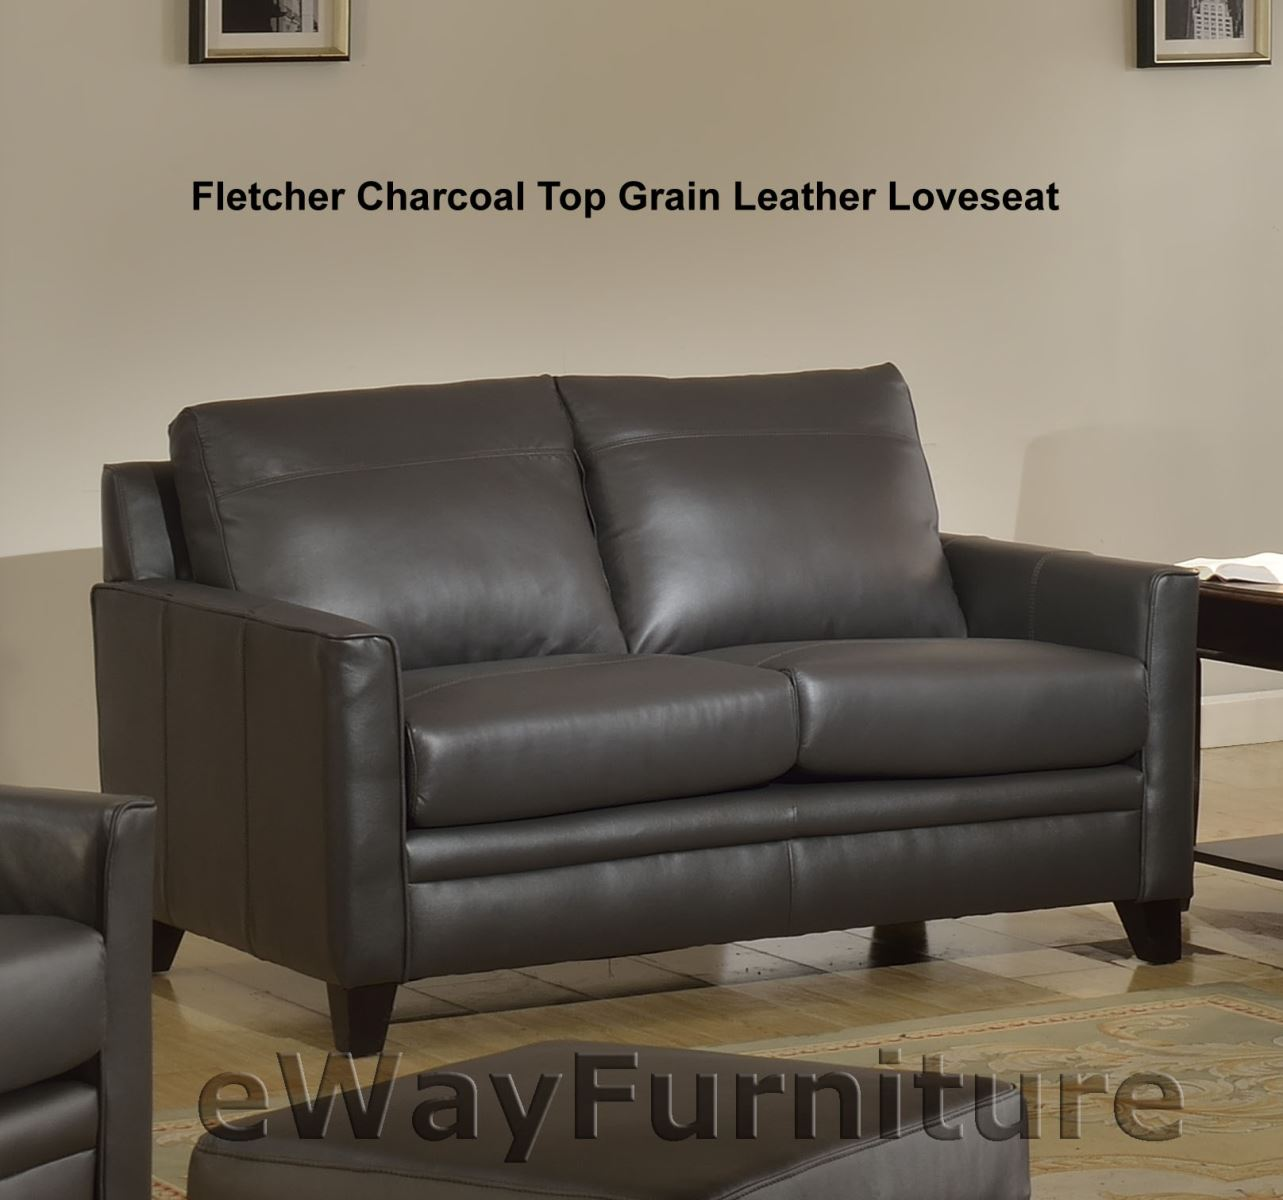 Fletcher Charcoal Top Grain Leather Loveseat